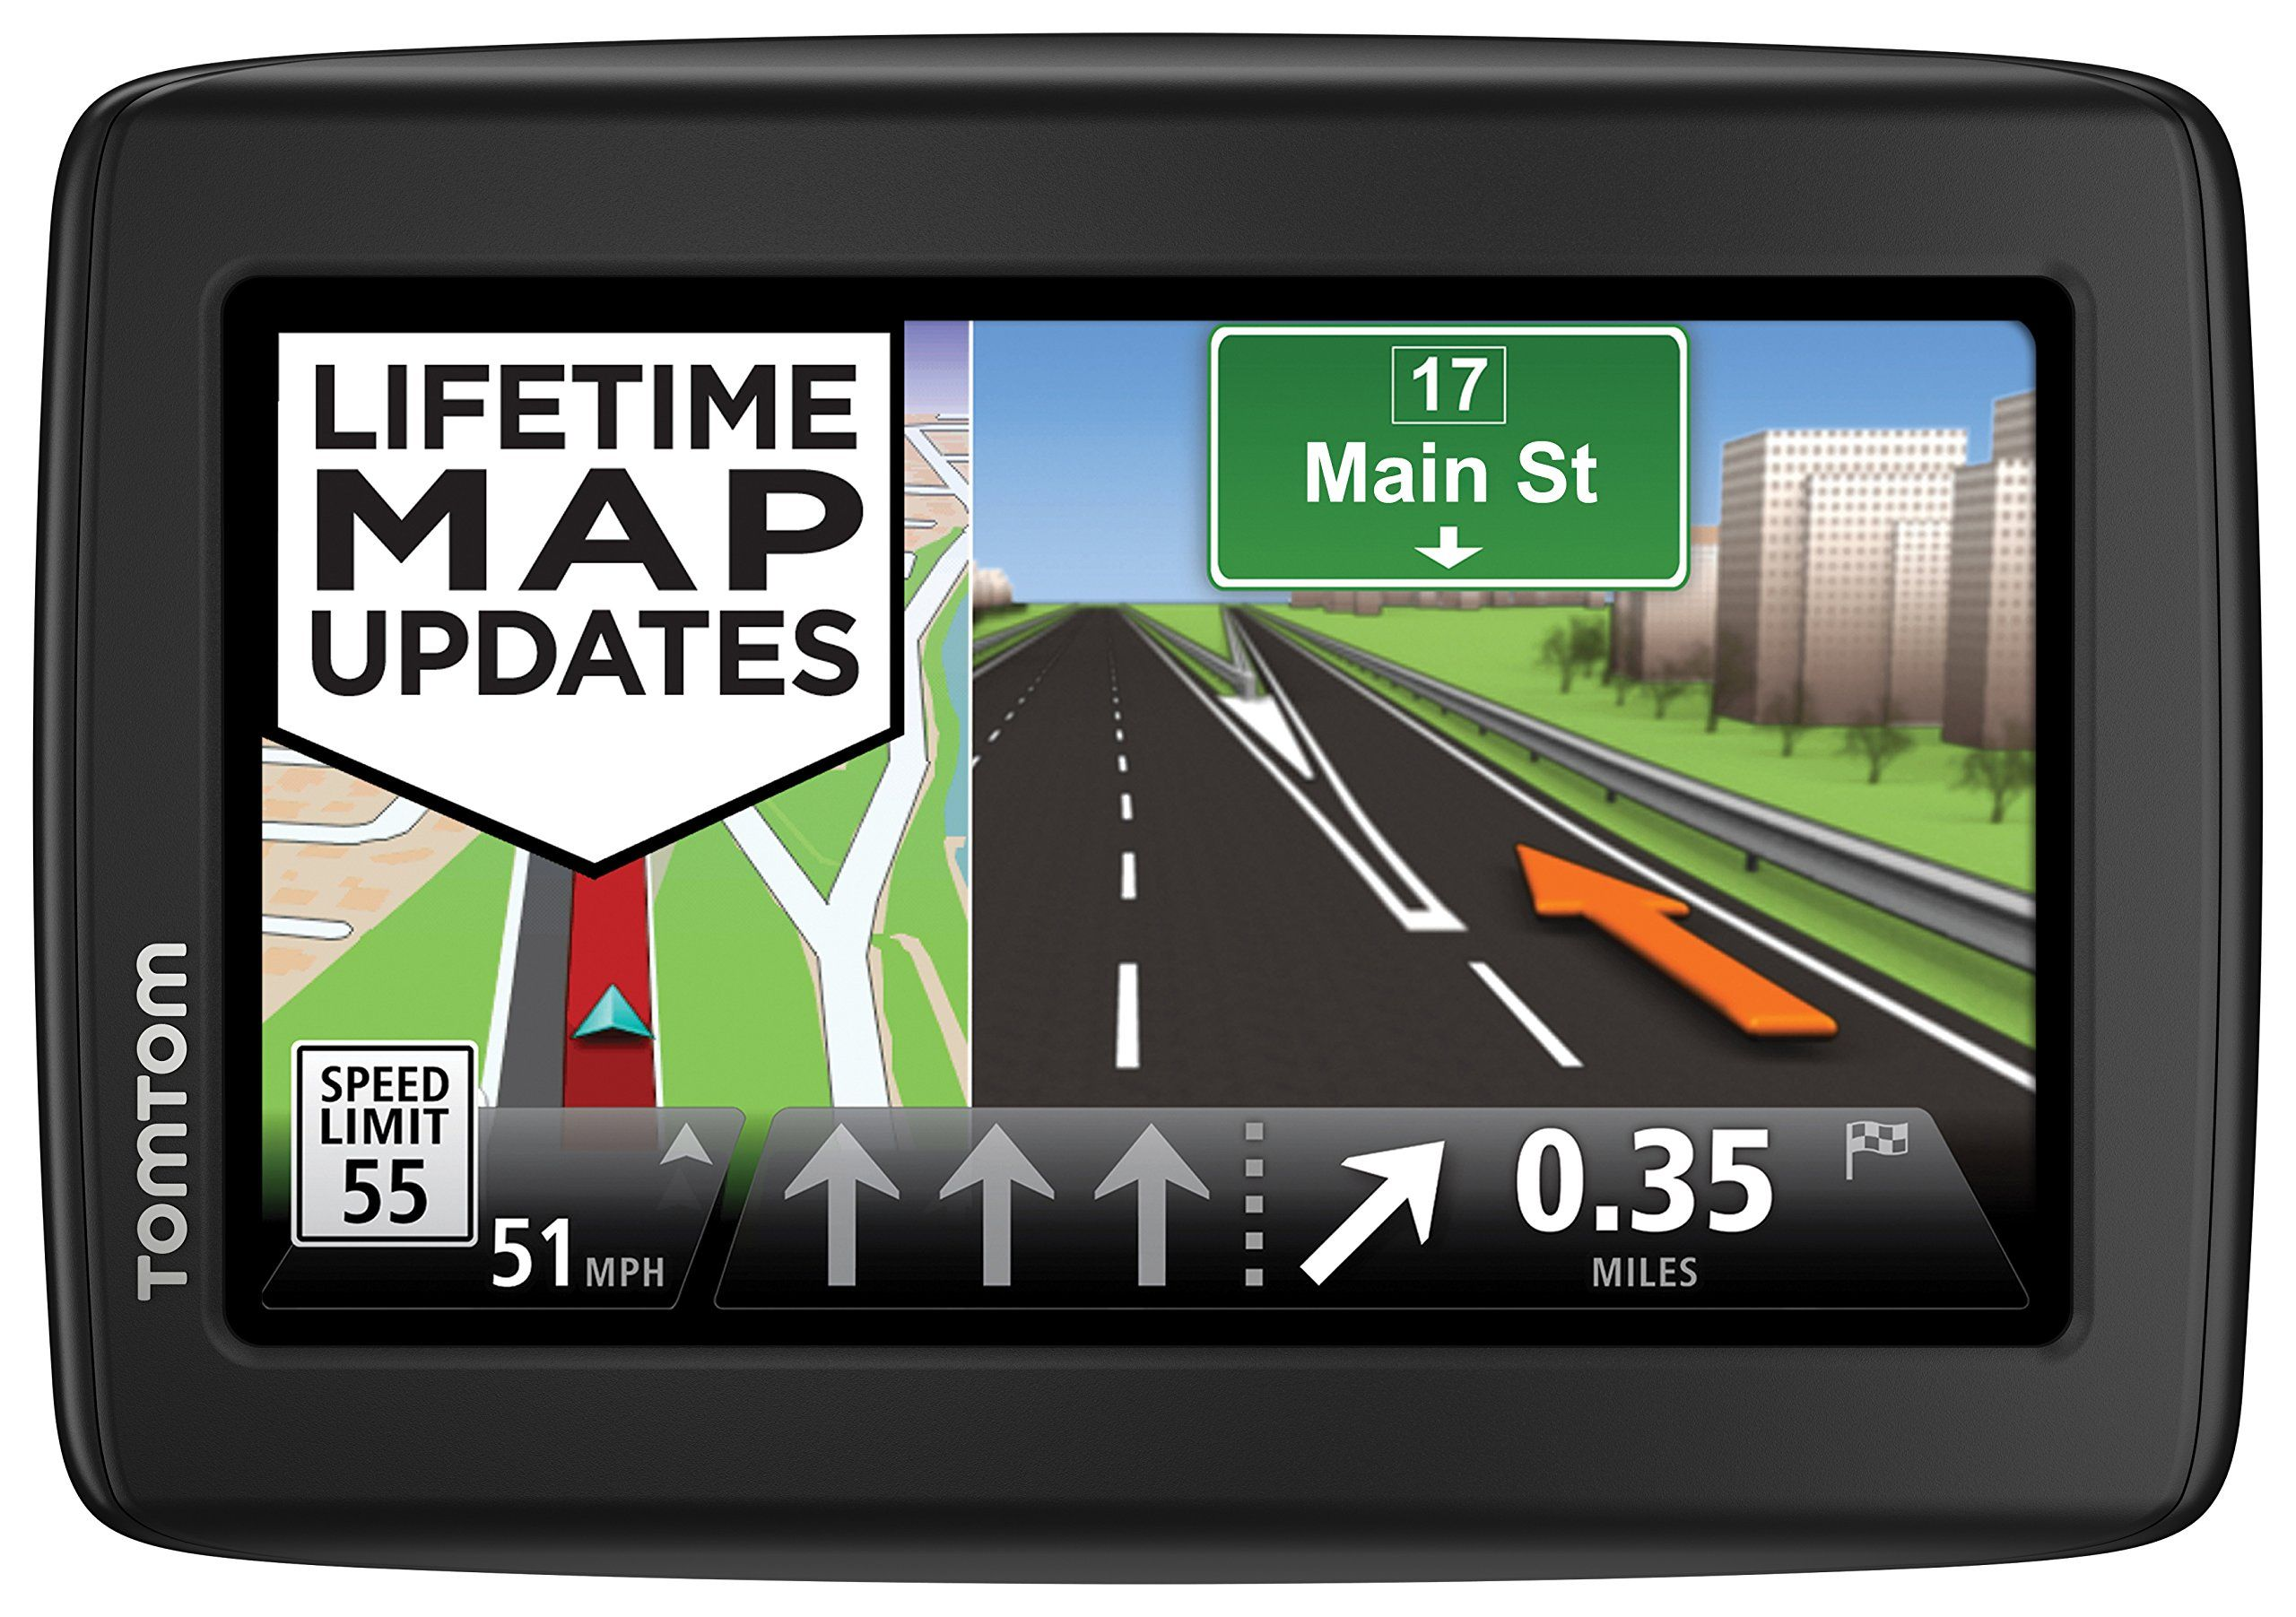 Tomtom Via 1515tm 5 Inch Portable Touchscreen Car Gps Navigation System Live Traffic Lifetime Map Updates Gps Navigation Gps Units Car Gps